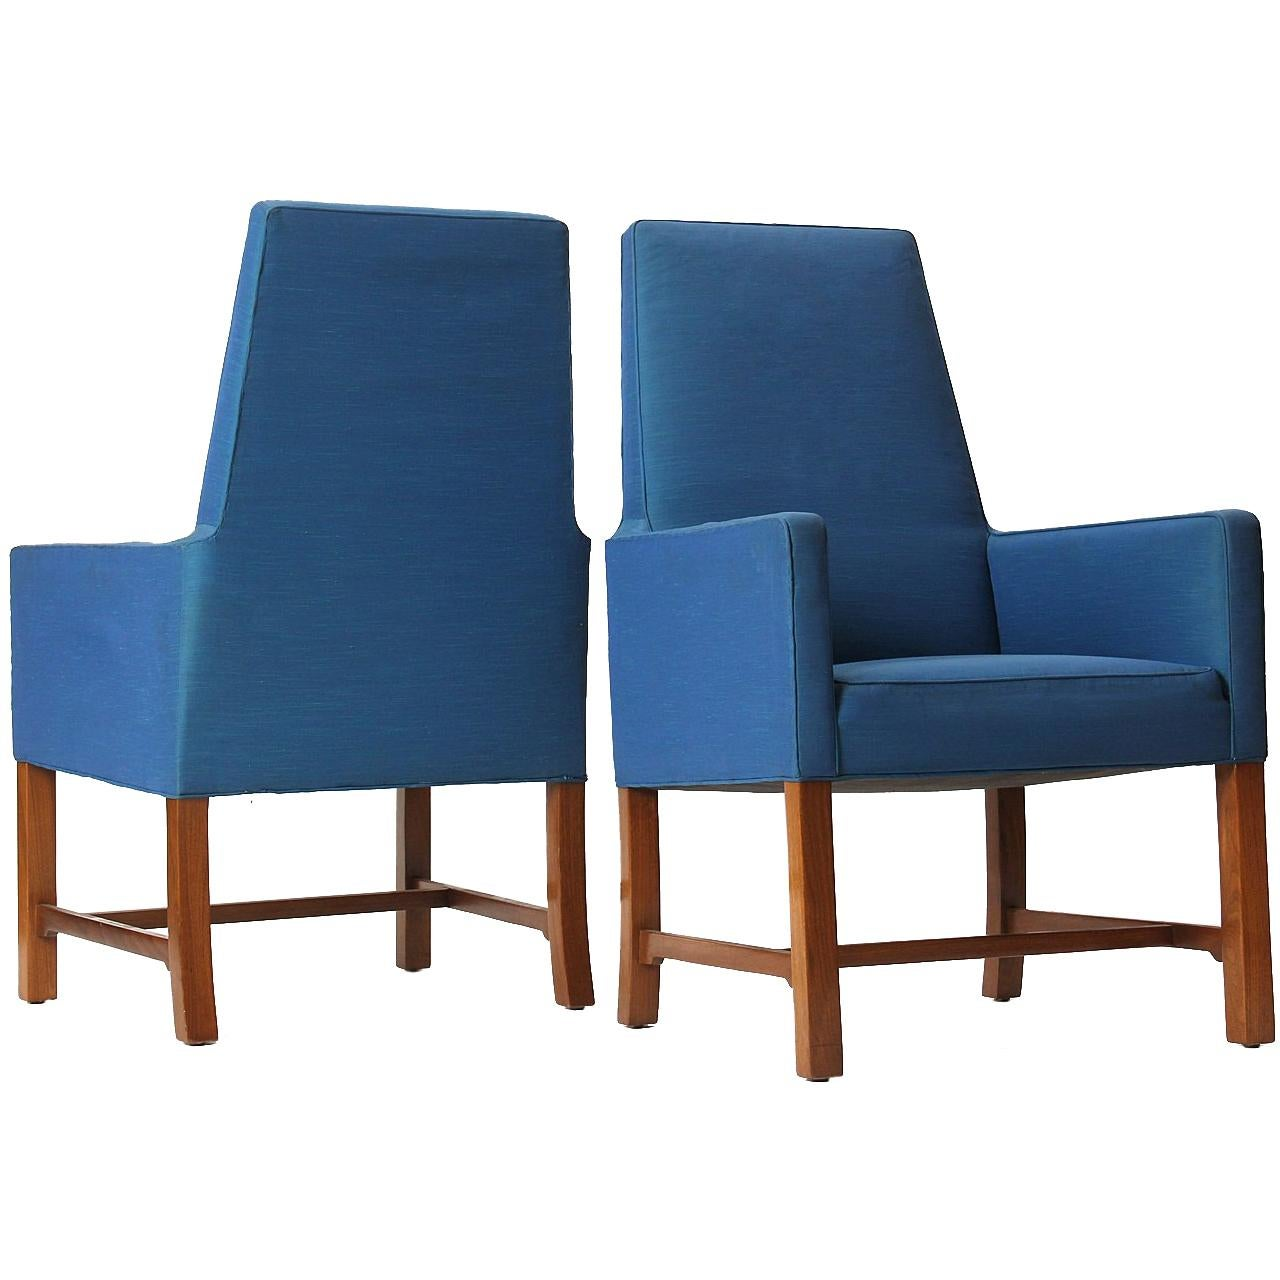 Pair of Janus High Back Chairs by Edward Wormley